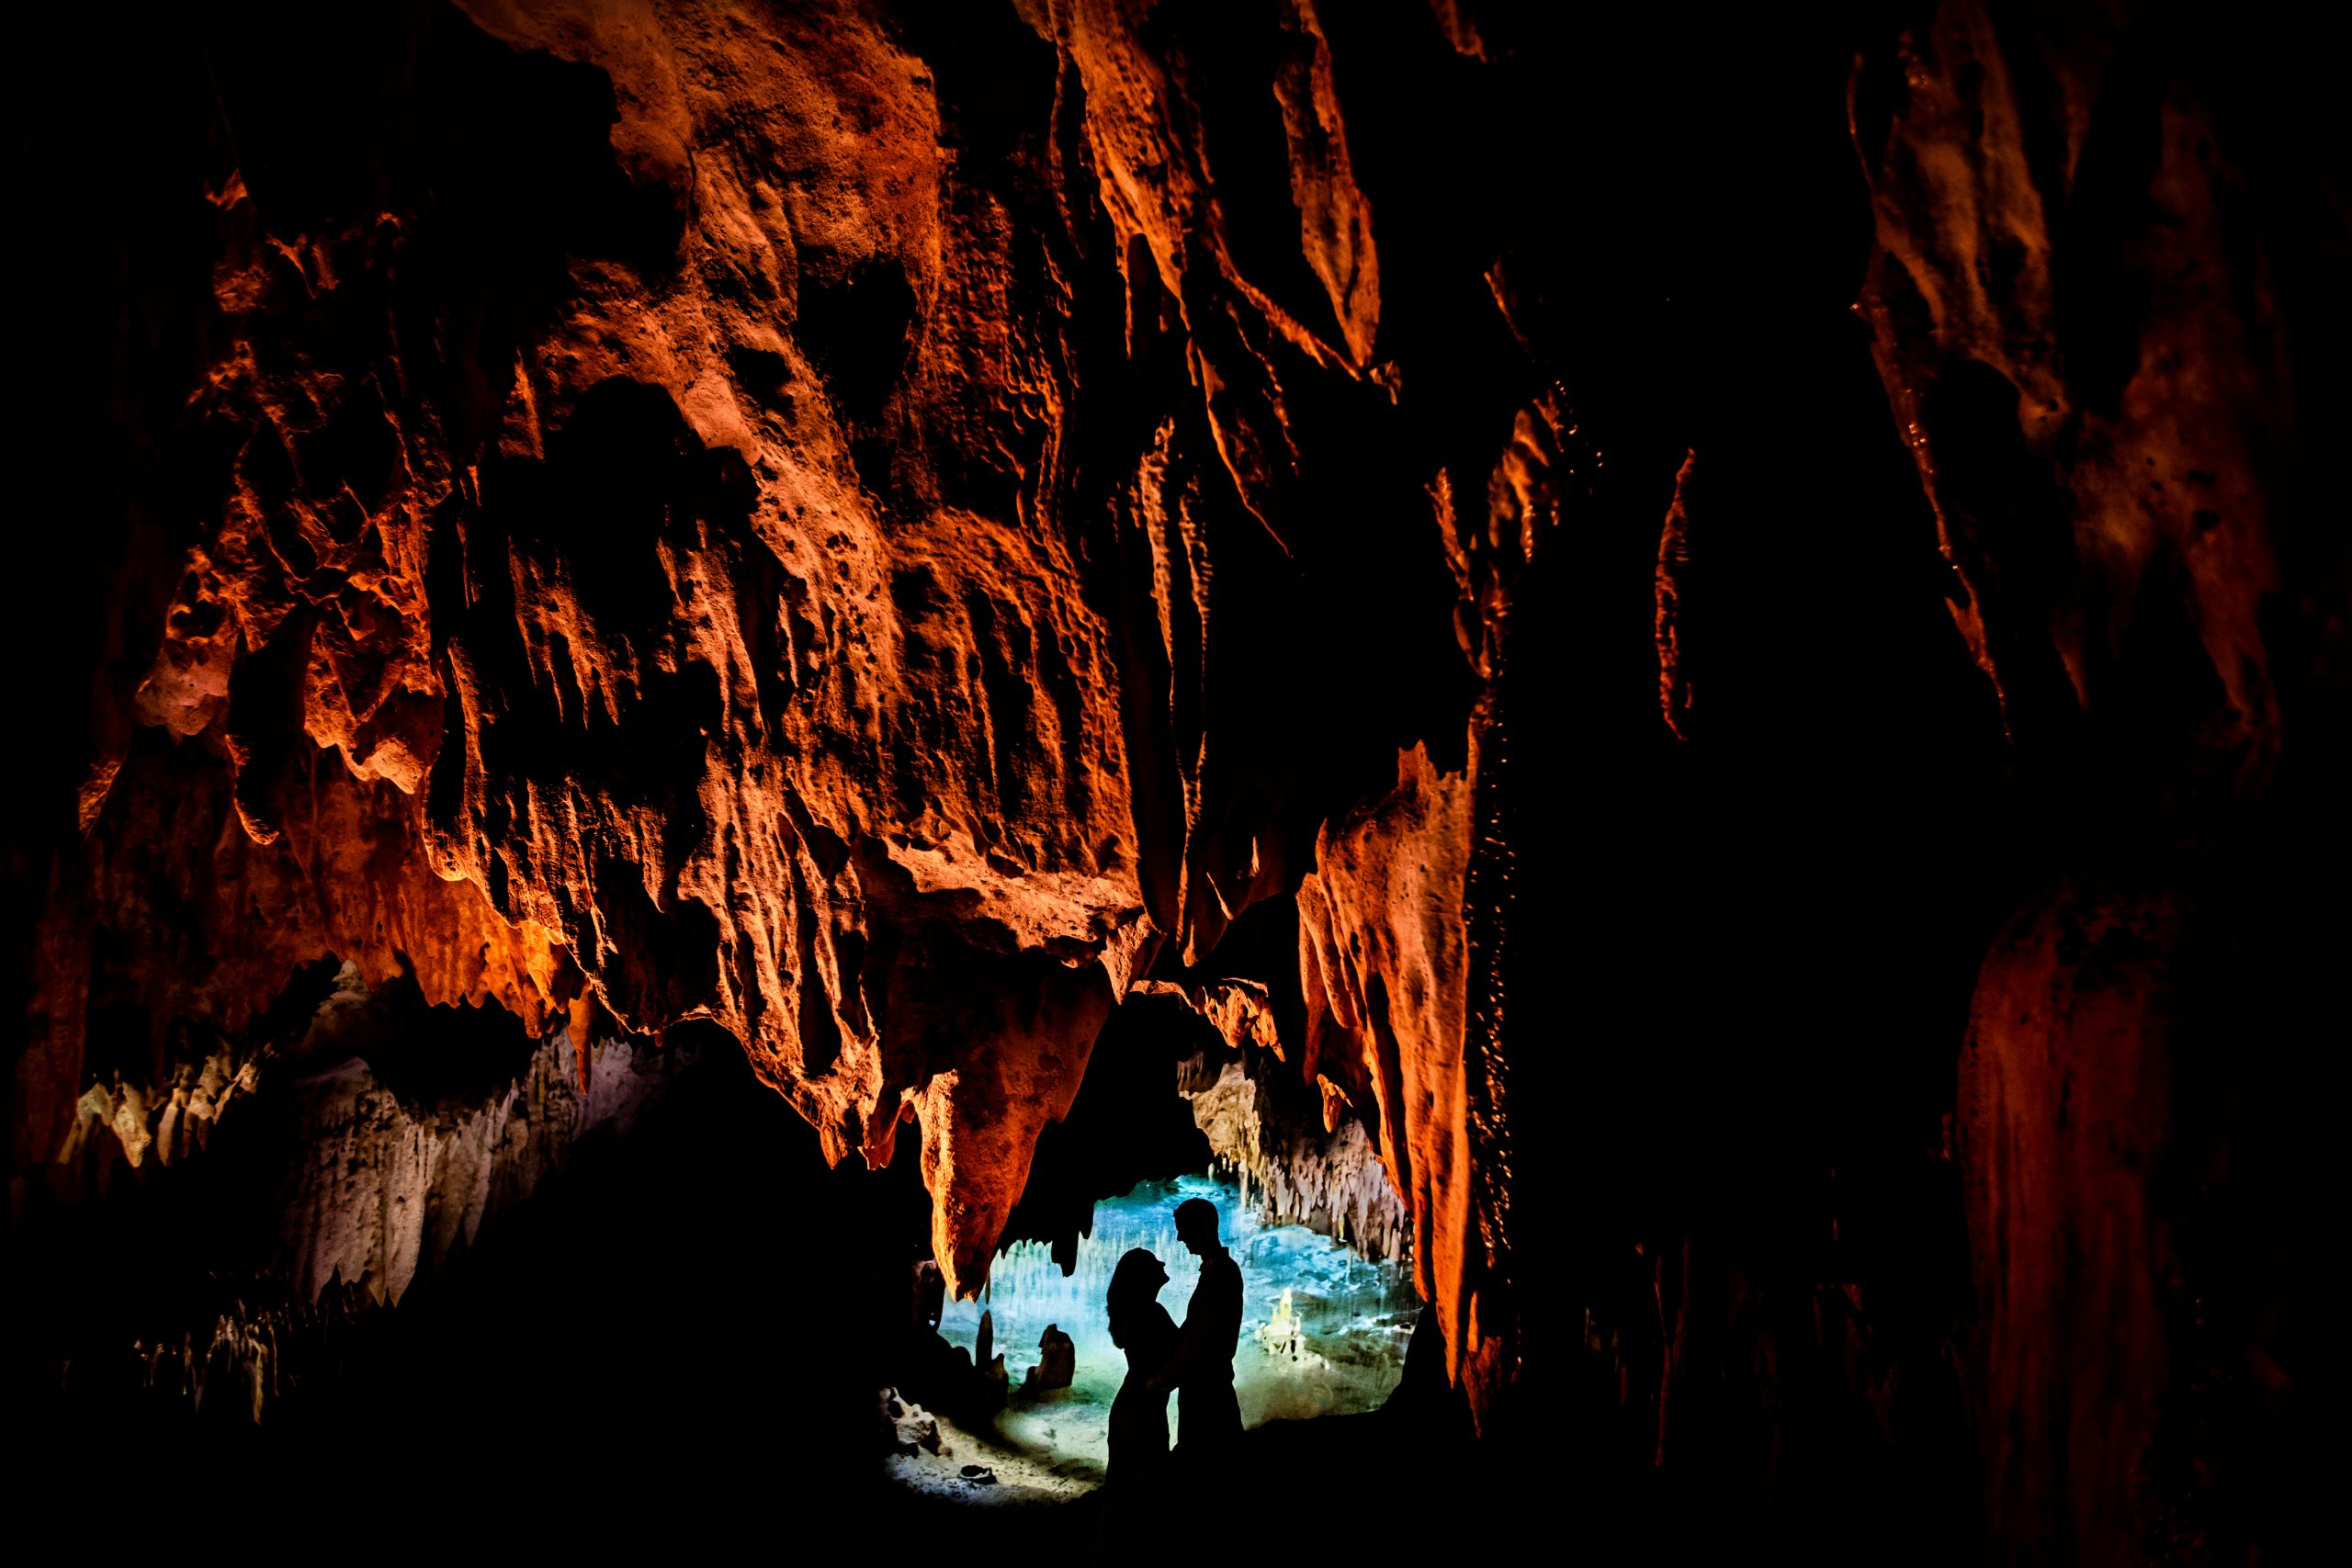 Silhouette of newlyweds embracing each other at the entrance of a cave